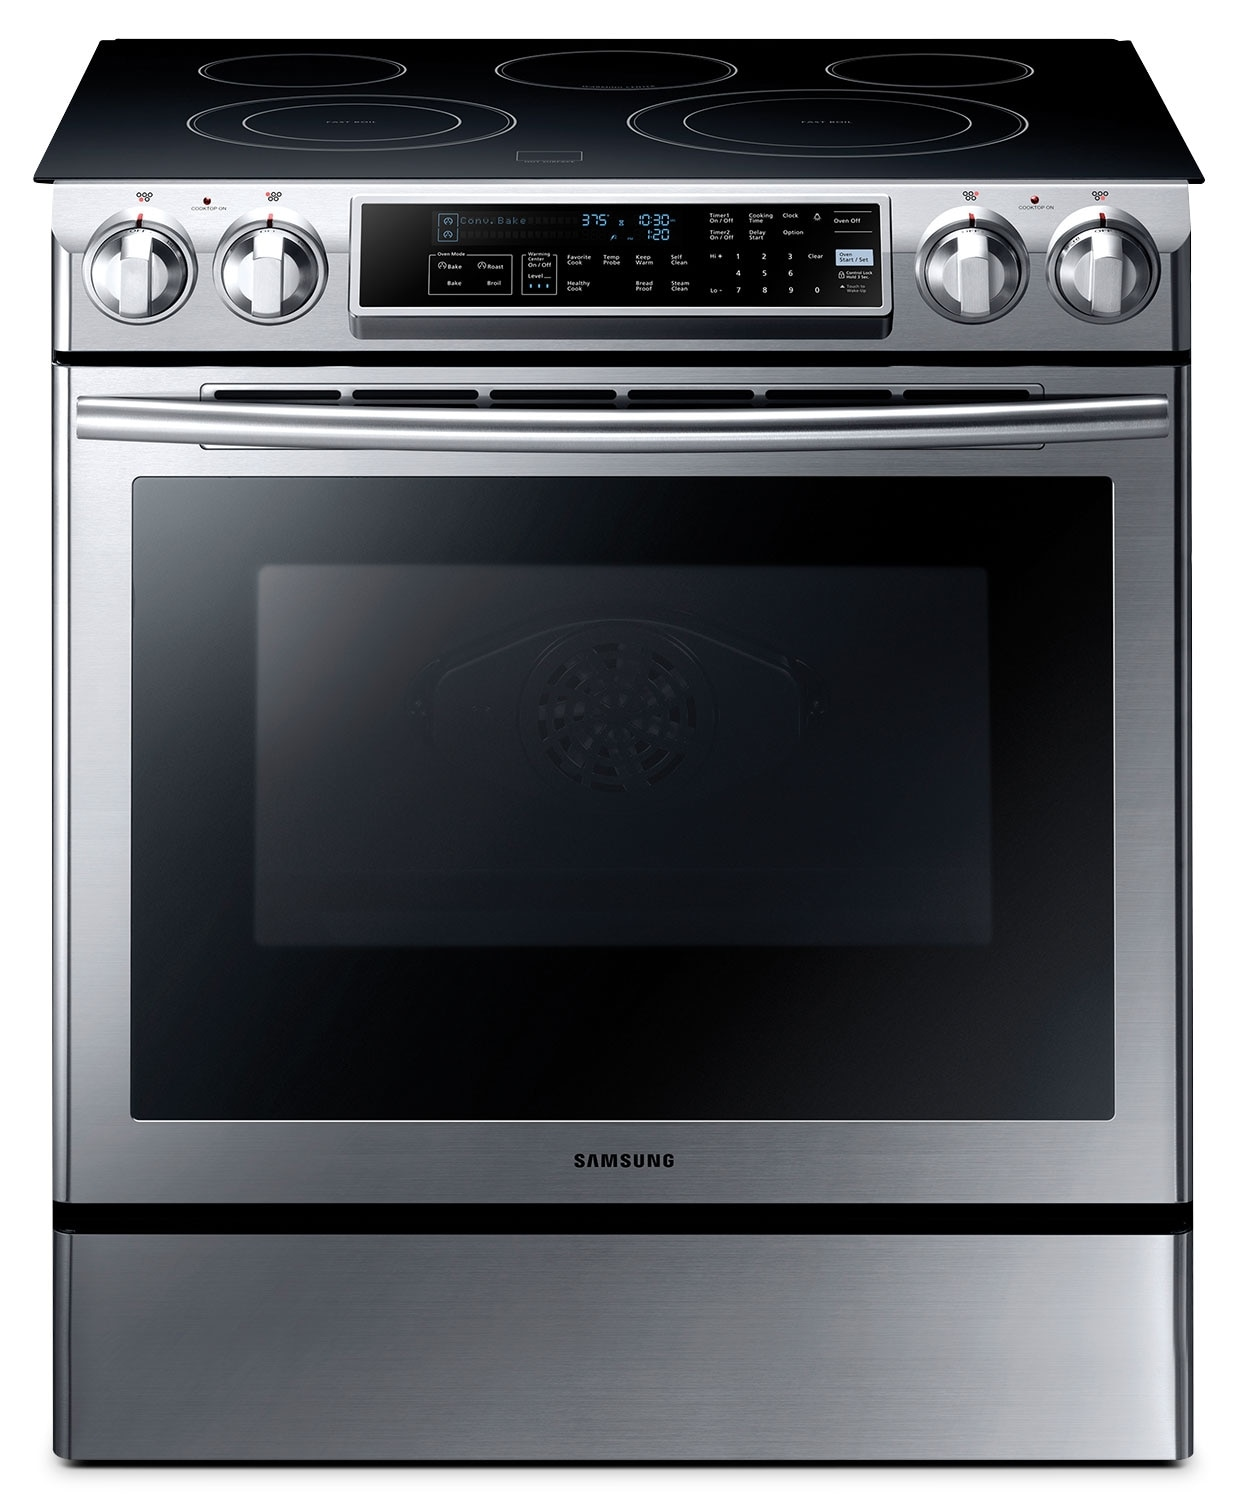 Samsung 5.8 Cu. Ft. Slide-In Electric Range - Stainless Steel